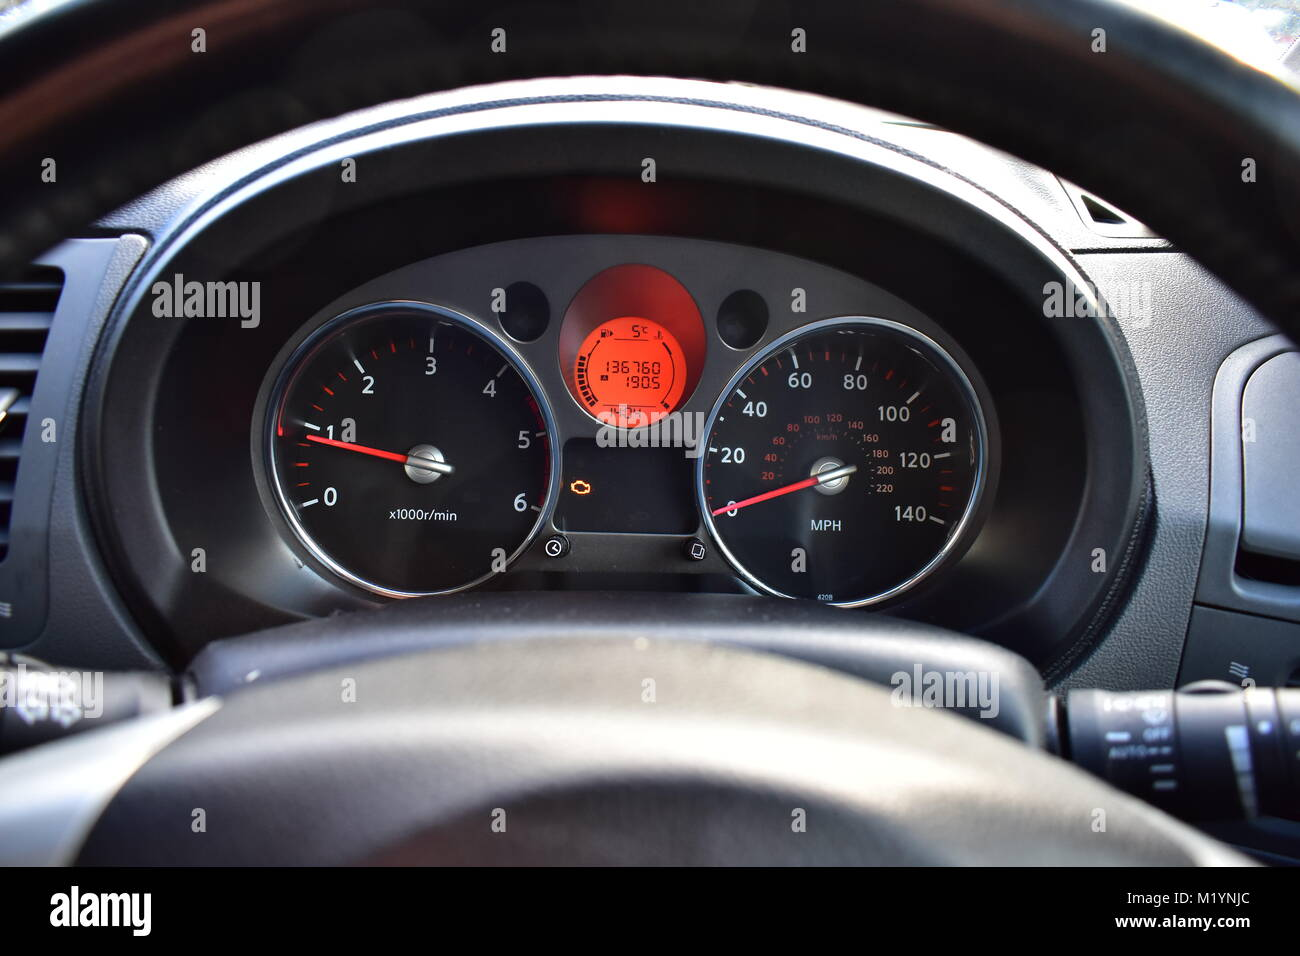 Rev Counter Car Dials Stock Photos & Rev Counter Car Dials